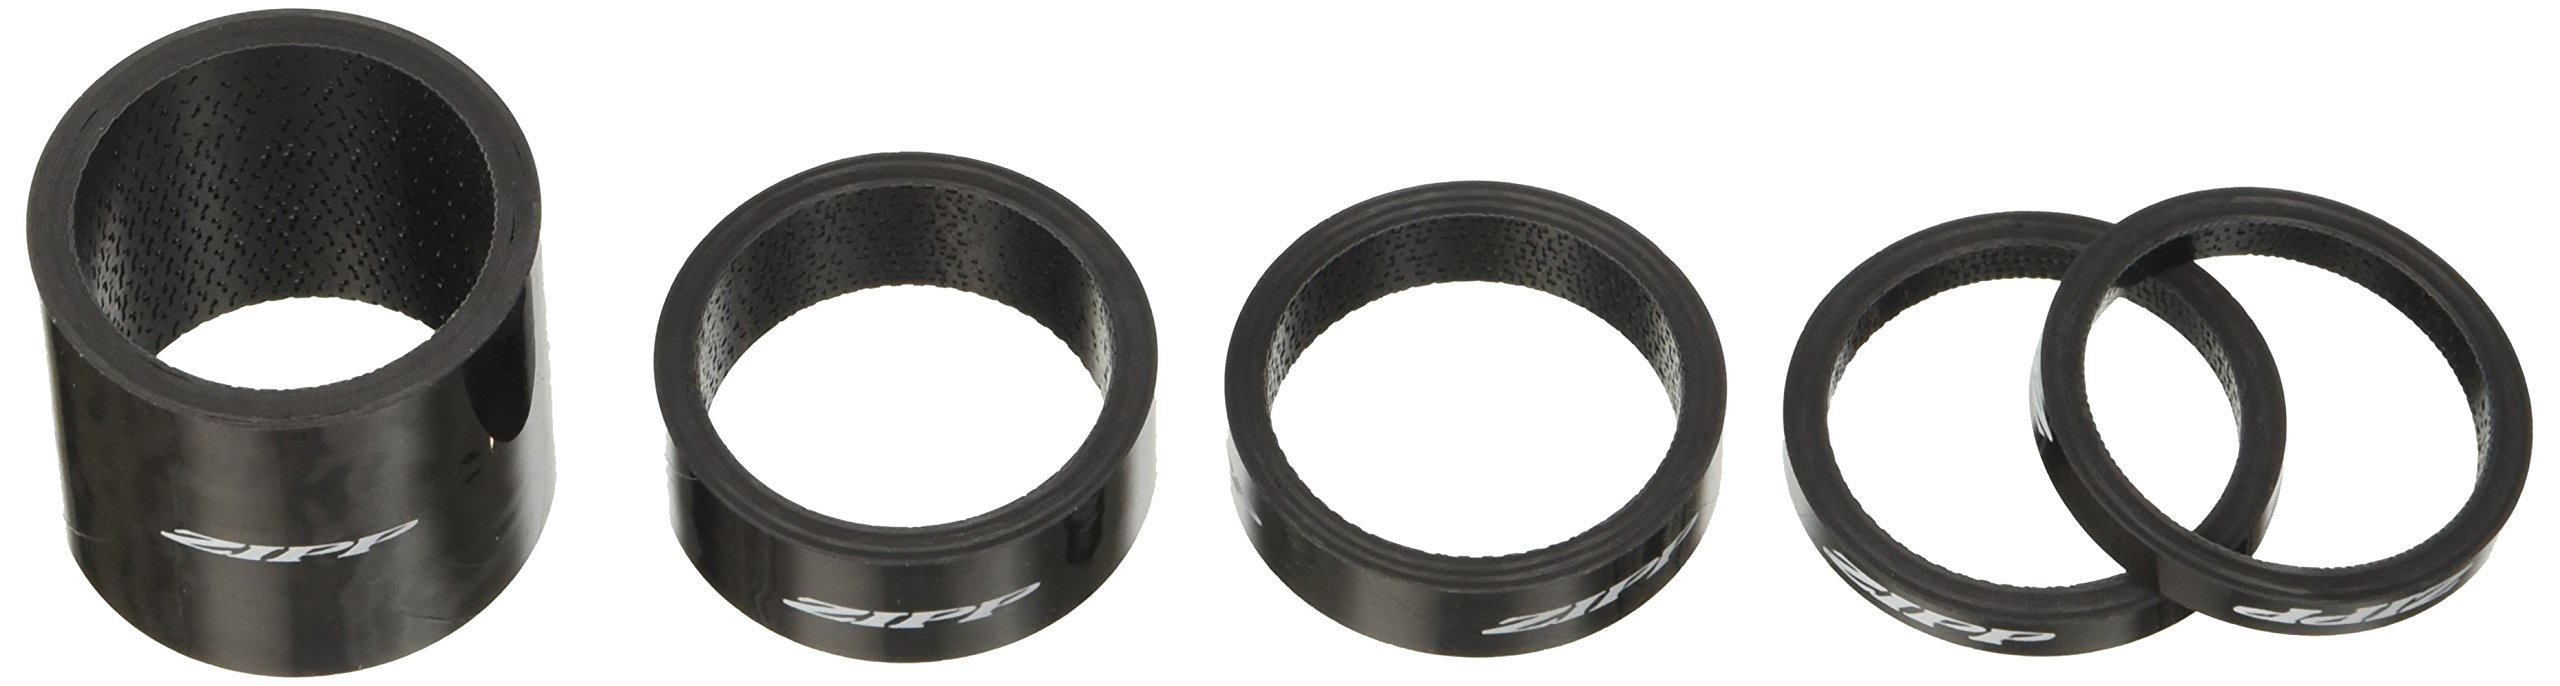 Zipp Headset Carbon Spacer Set